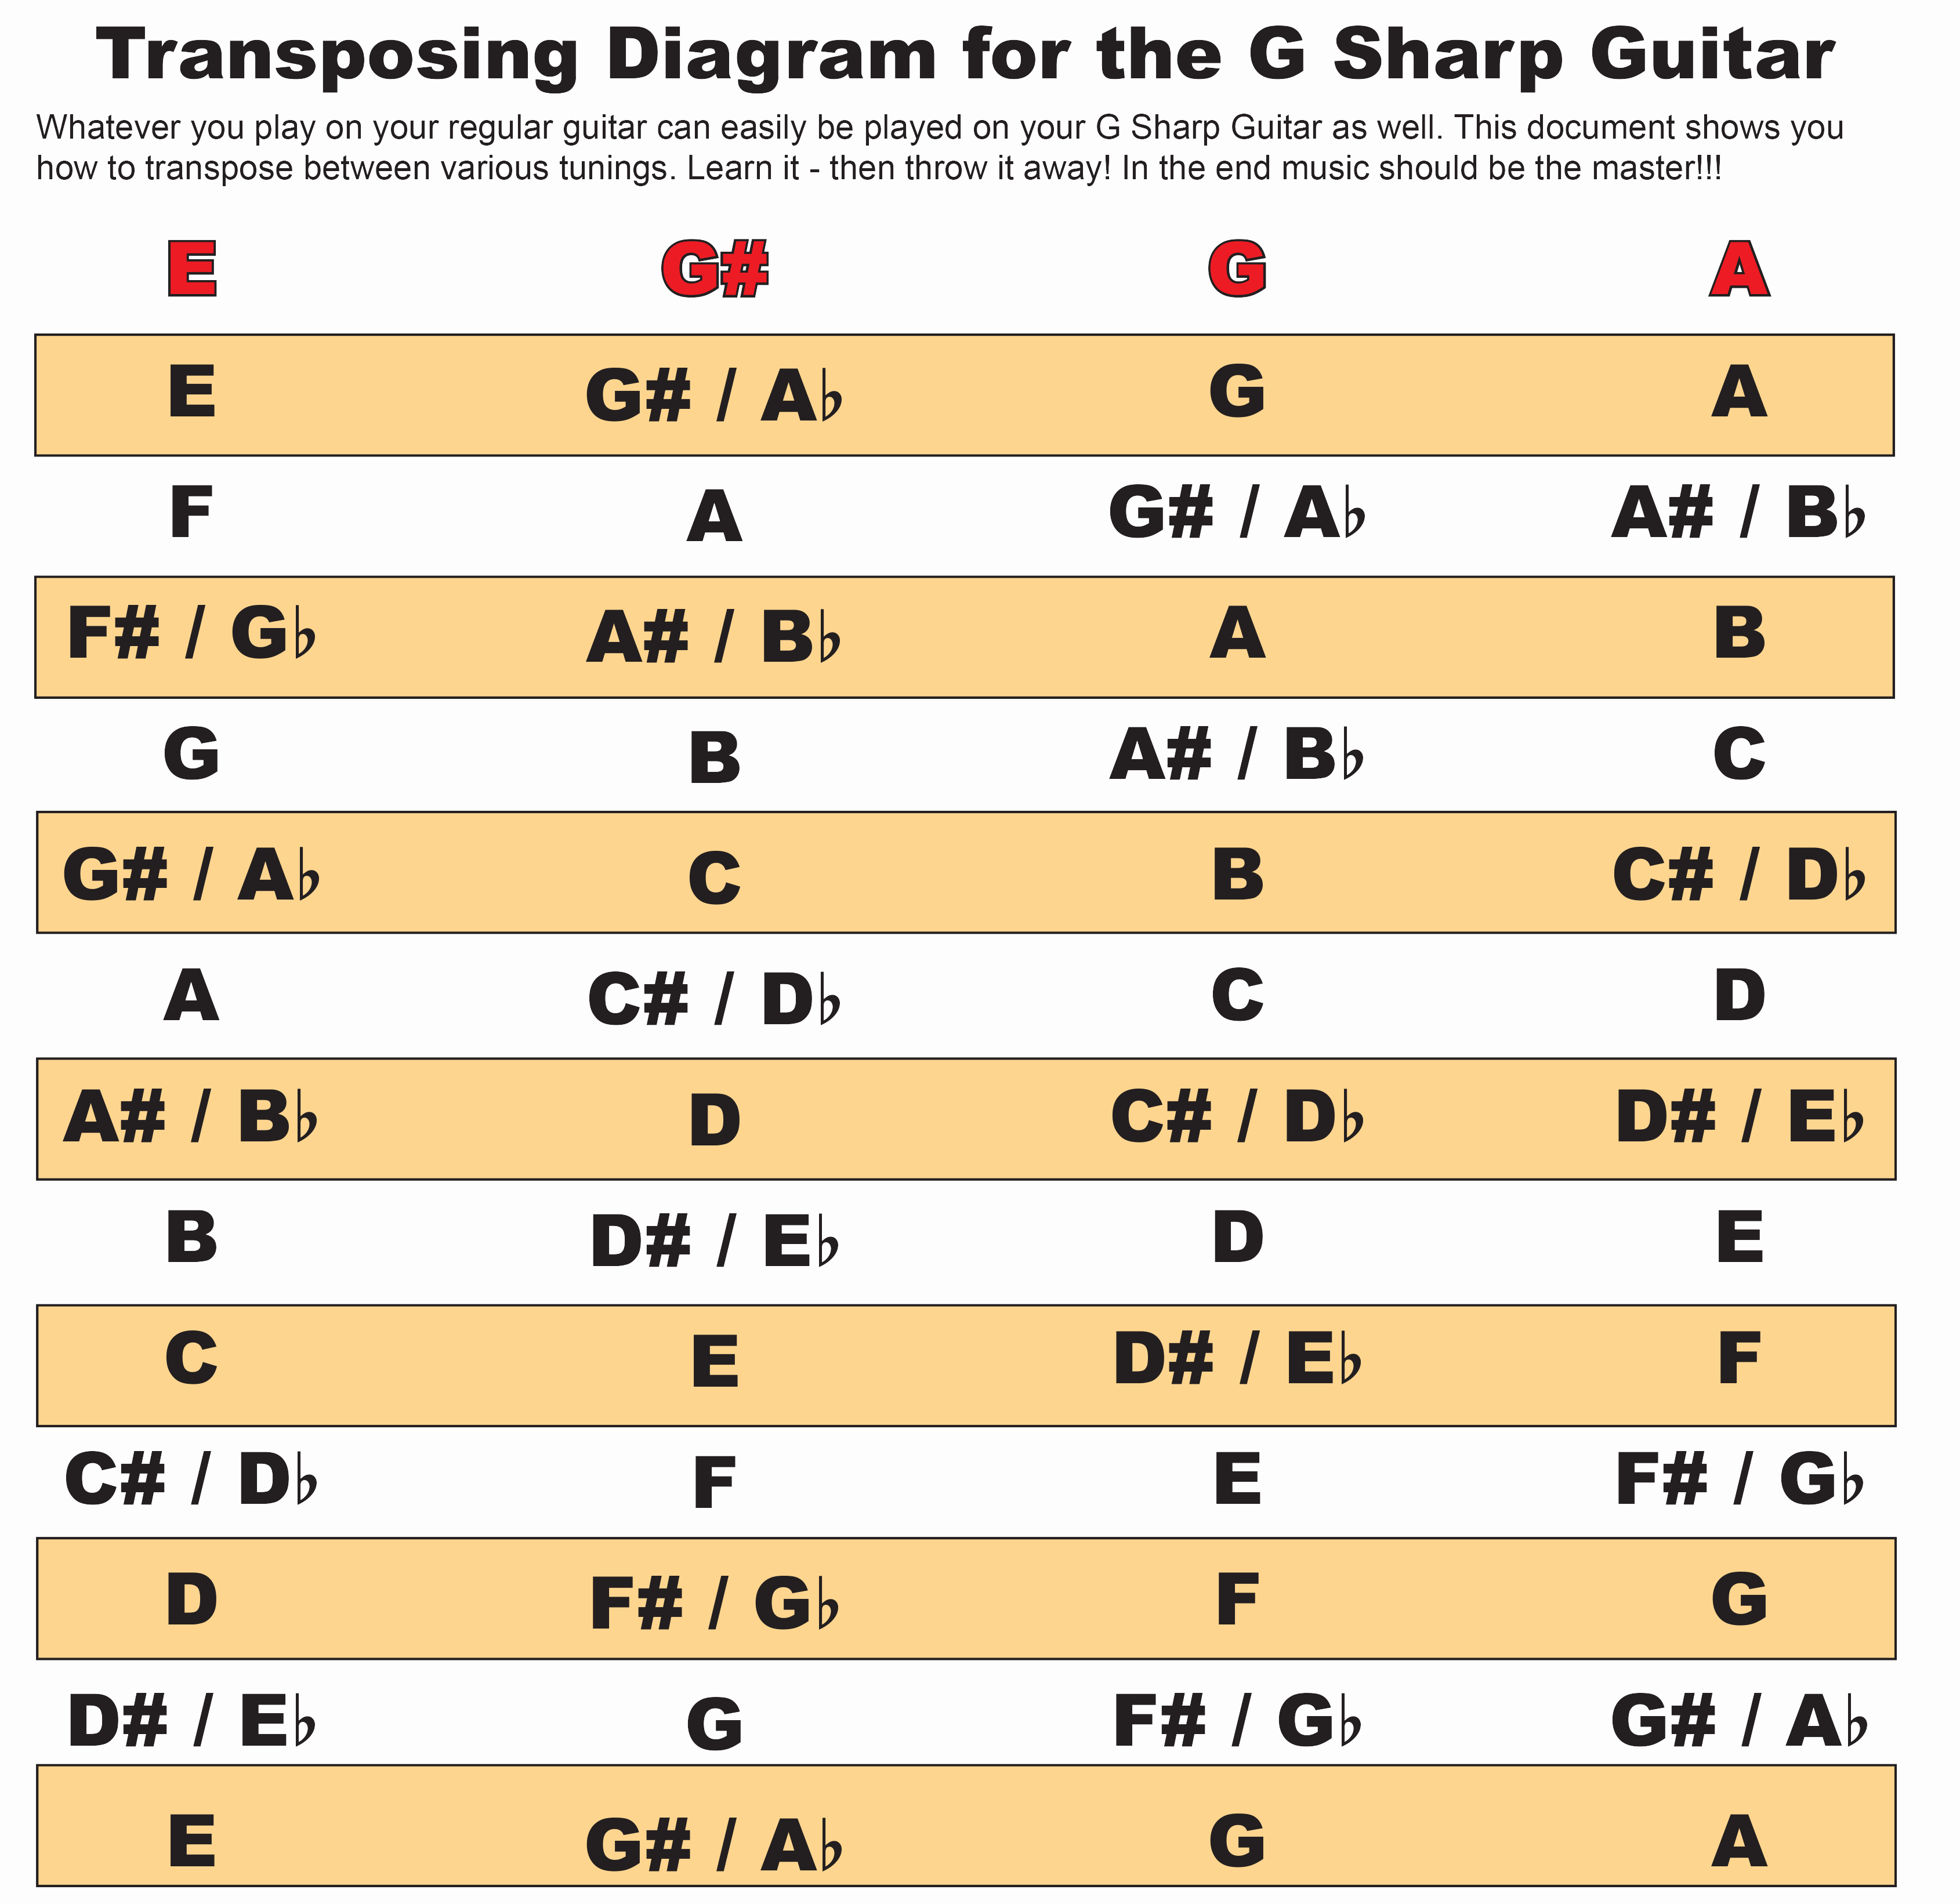 G SharpTransposingDiagram